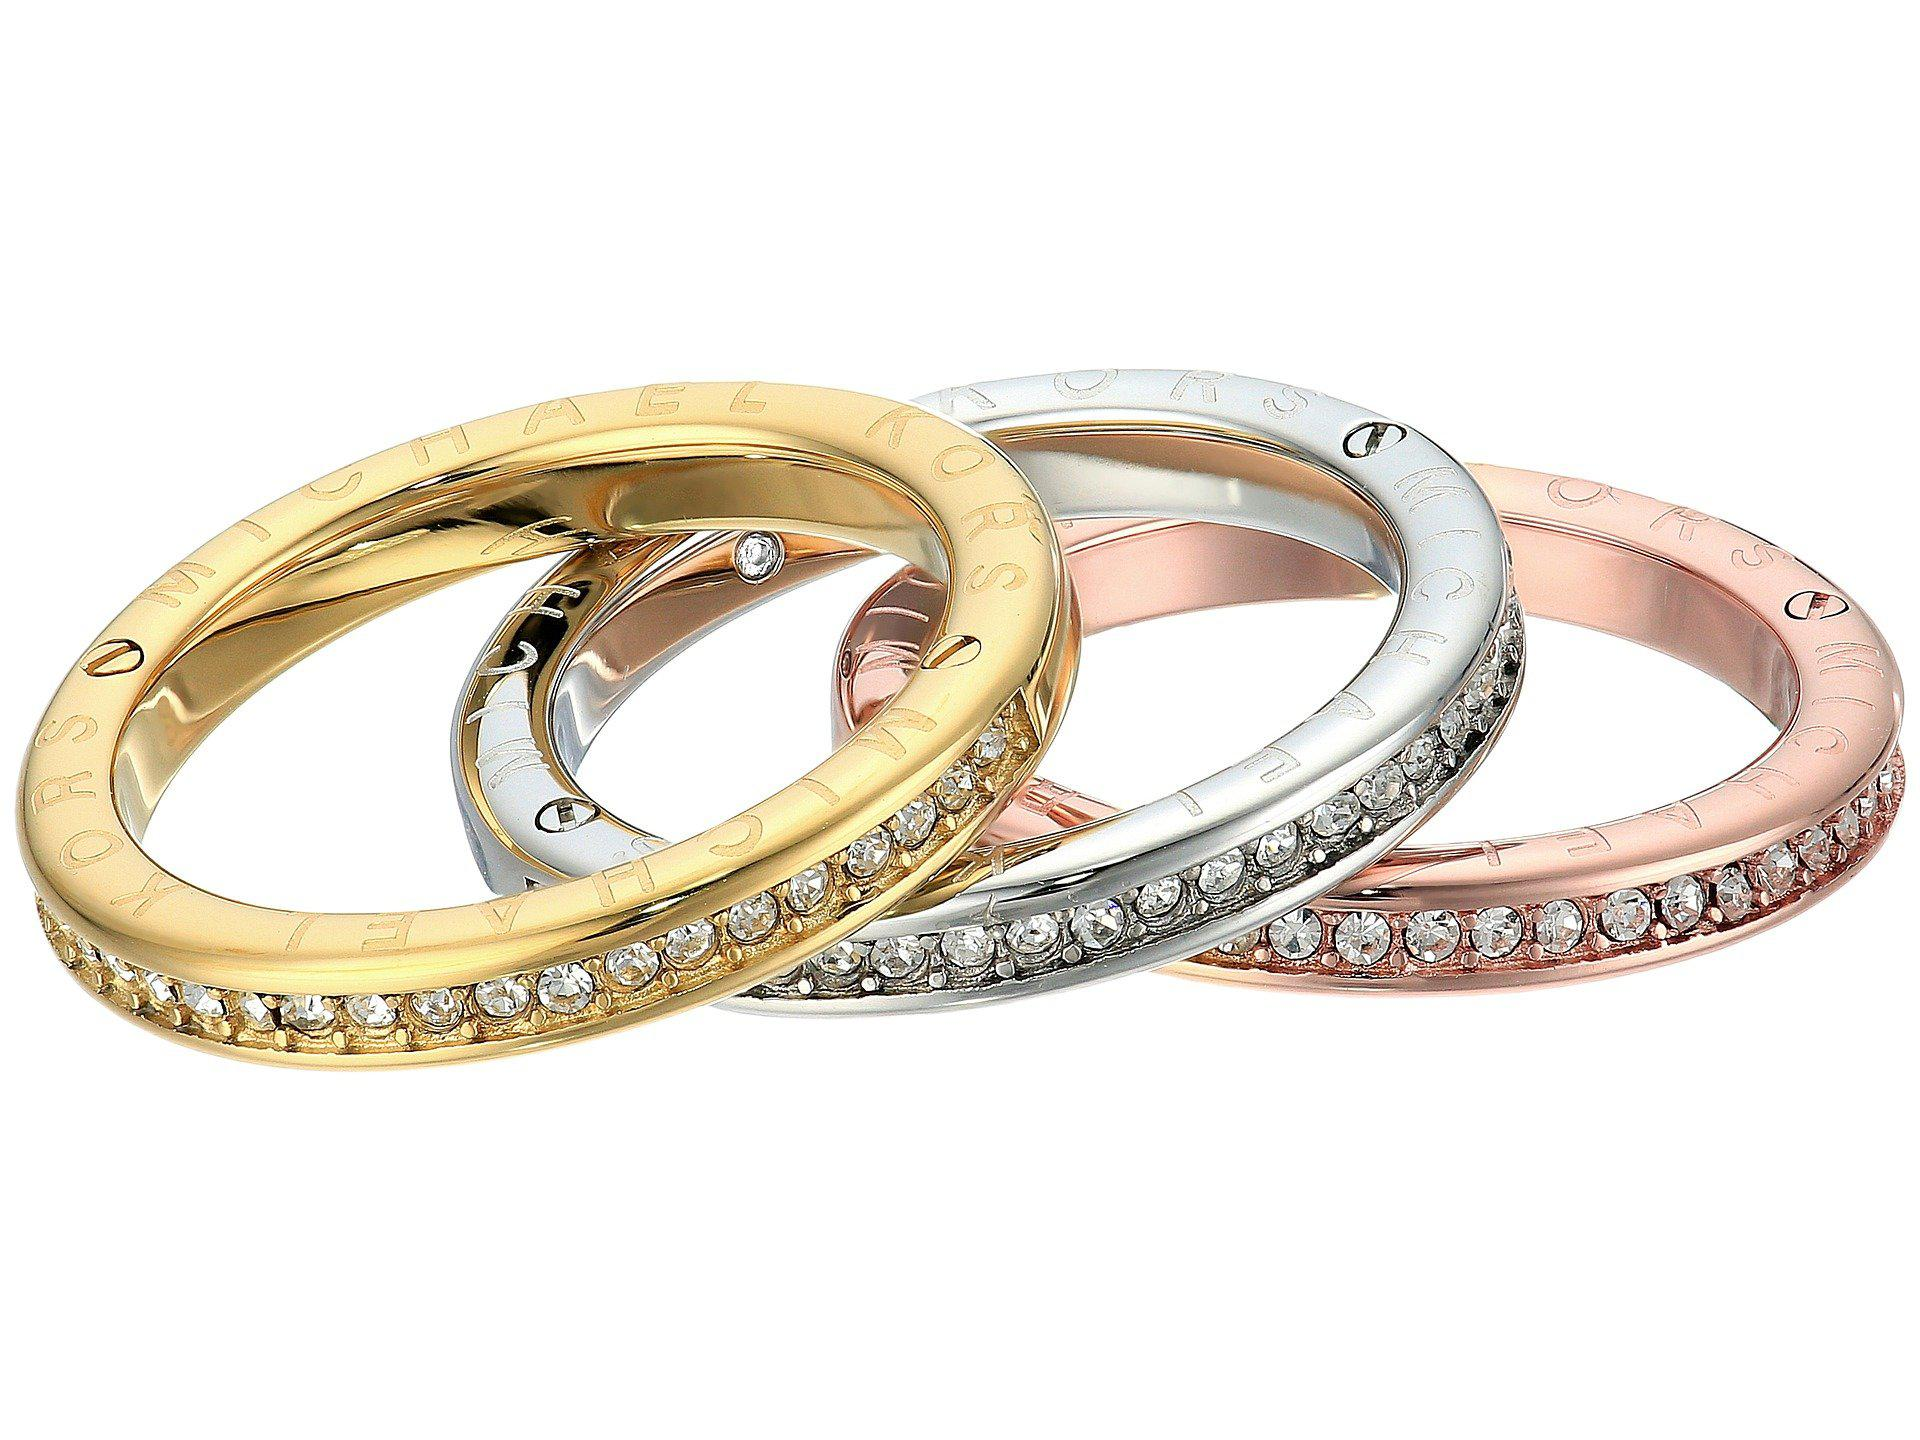 big store men ring depot at pc rings braid htm shop fit discounts on band unisex wedding s basket comfort color tri gold